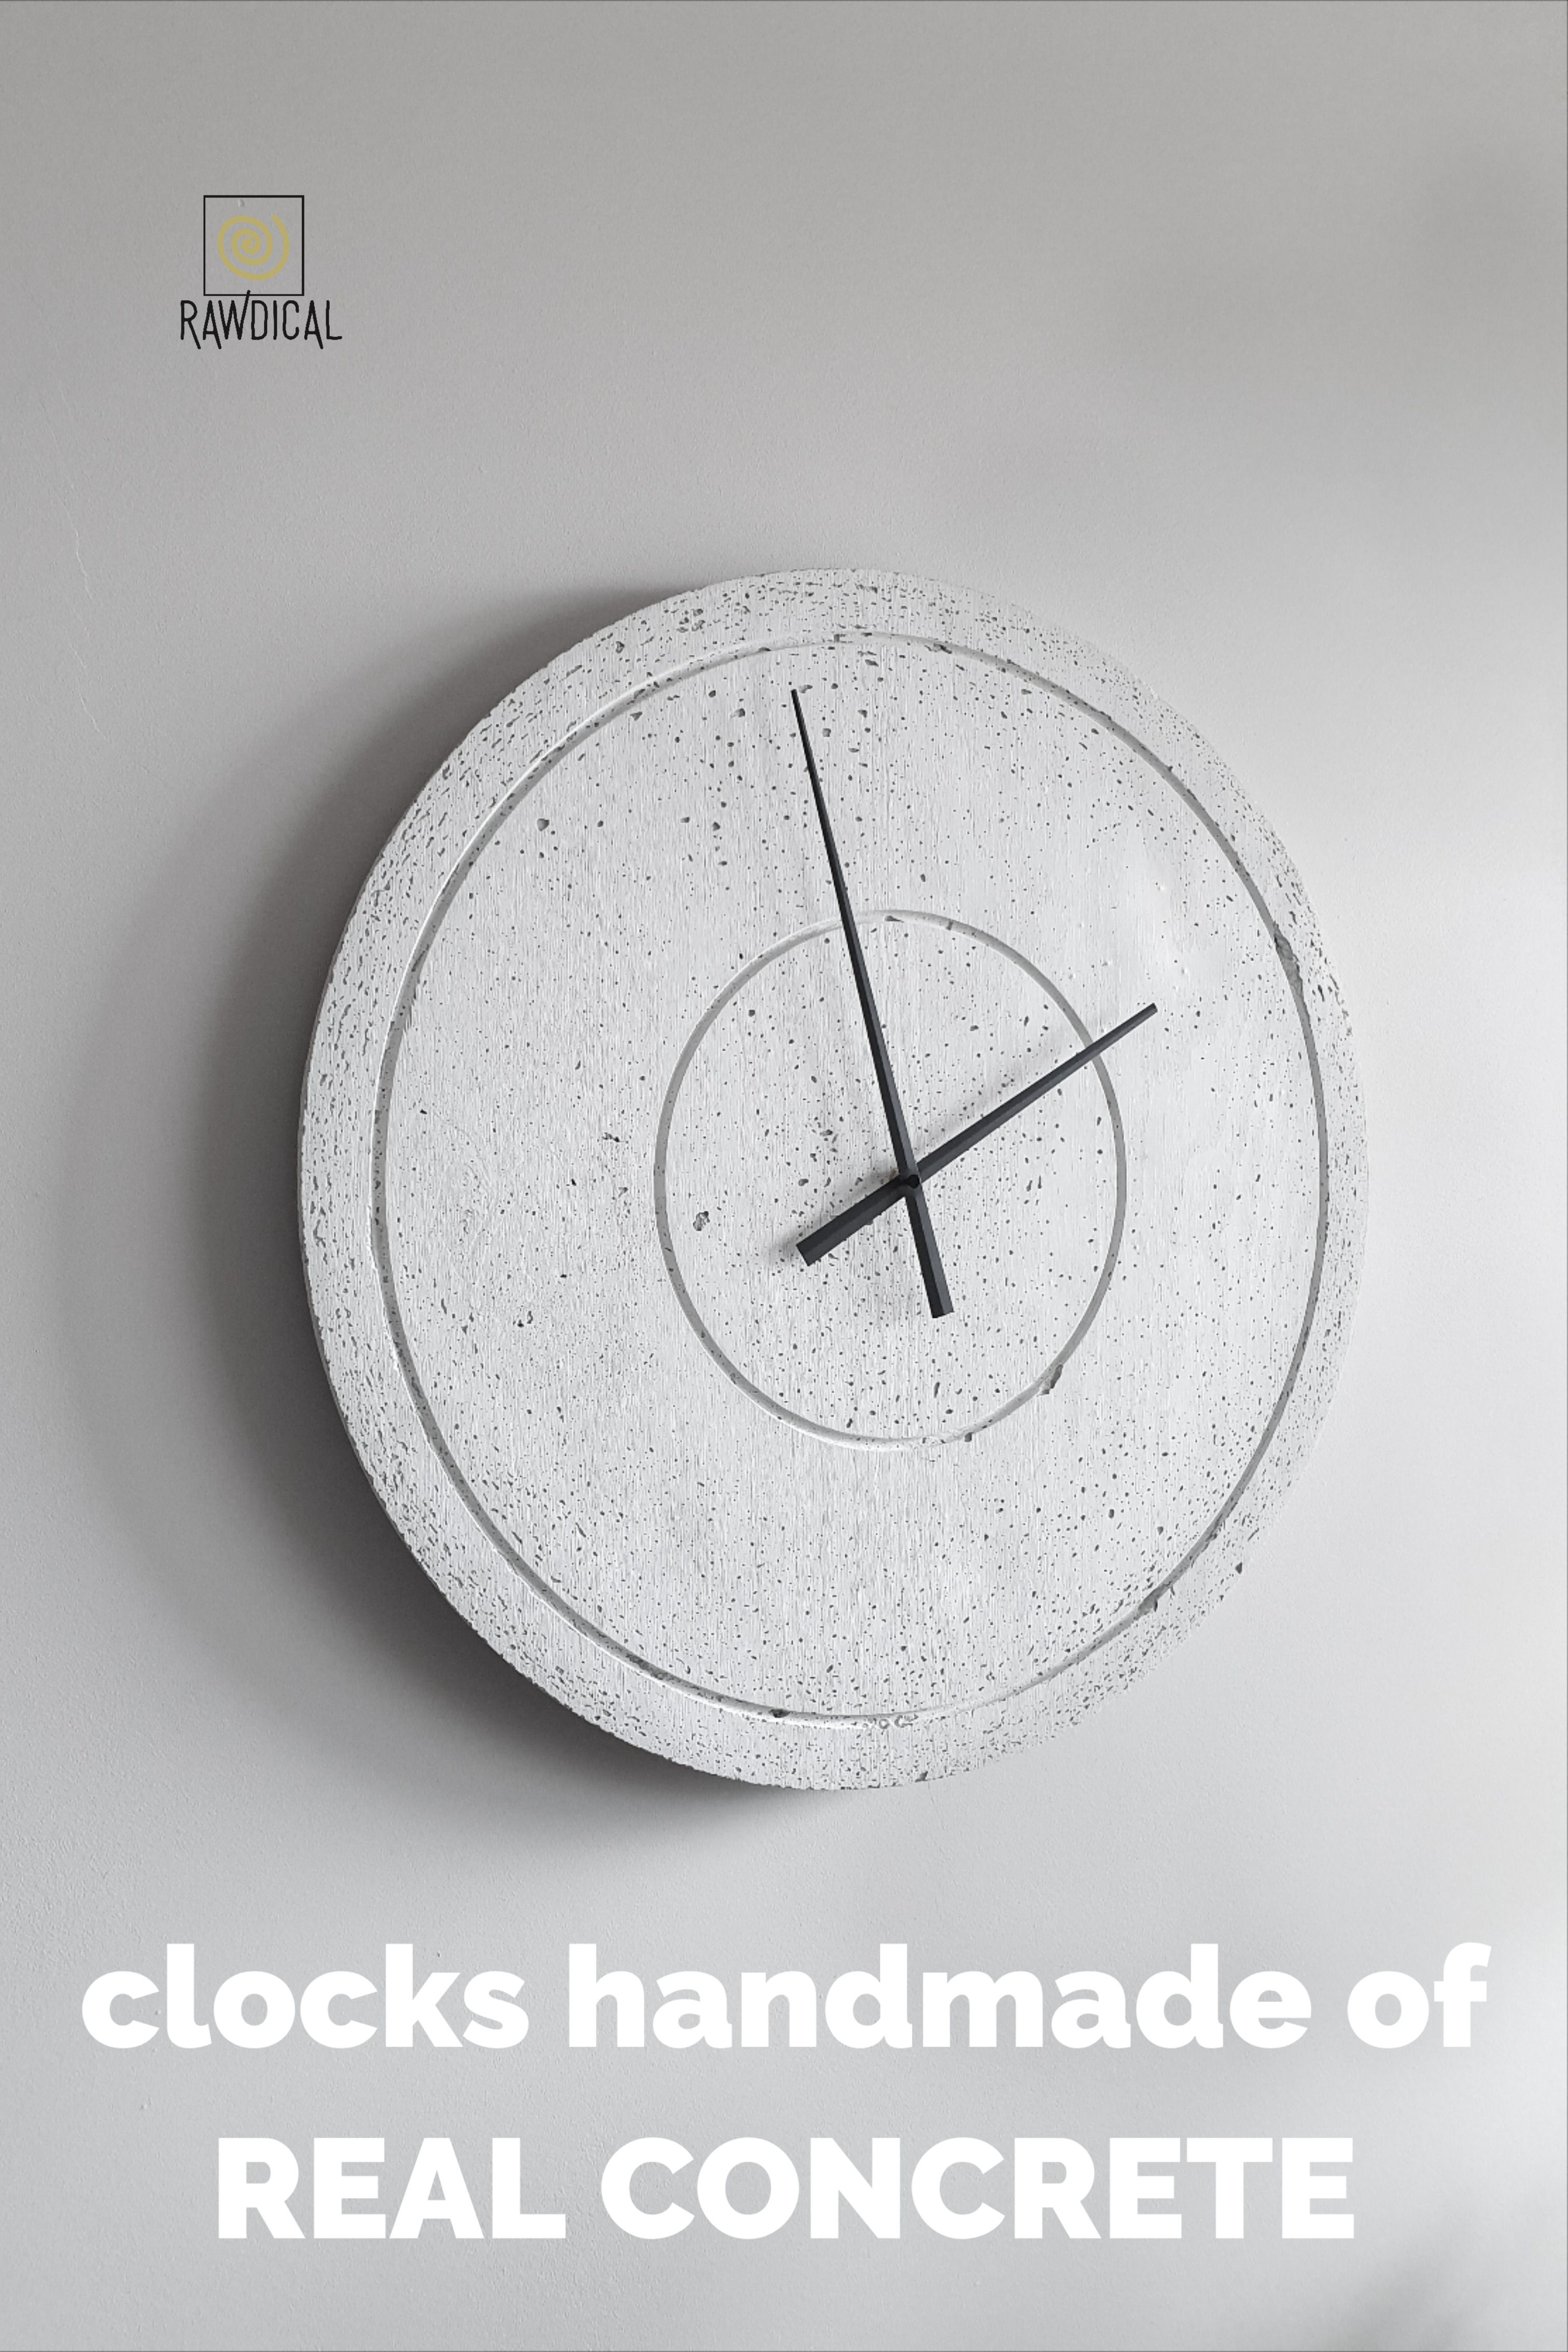 Irregular texture, color and pores – this is the true beauty of concrete. And we fell in love with that, because in controlled imperfection we see the excellence. #rawdical #concreteclock #clock #wallclock #homedecorideas #livingroomideas #livingroomdecor #moderninteriordesign #minimalistdecor #moderndesign #walldecor #concretedesign #industrialdesign